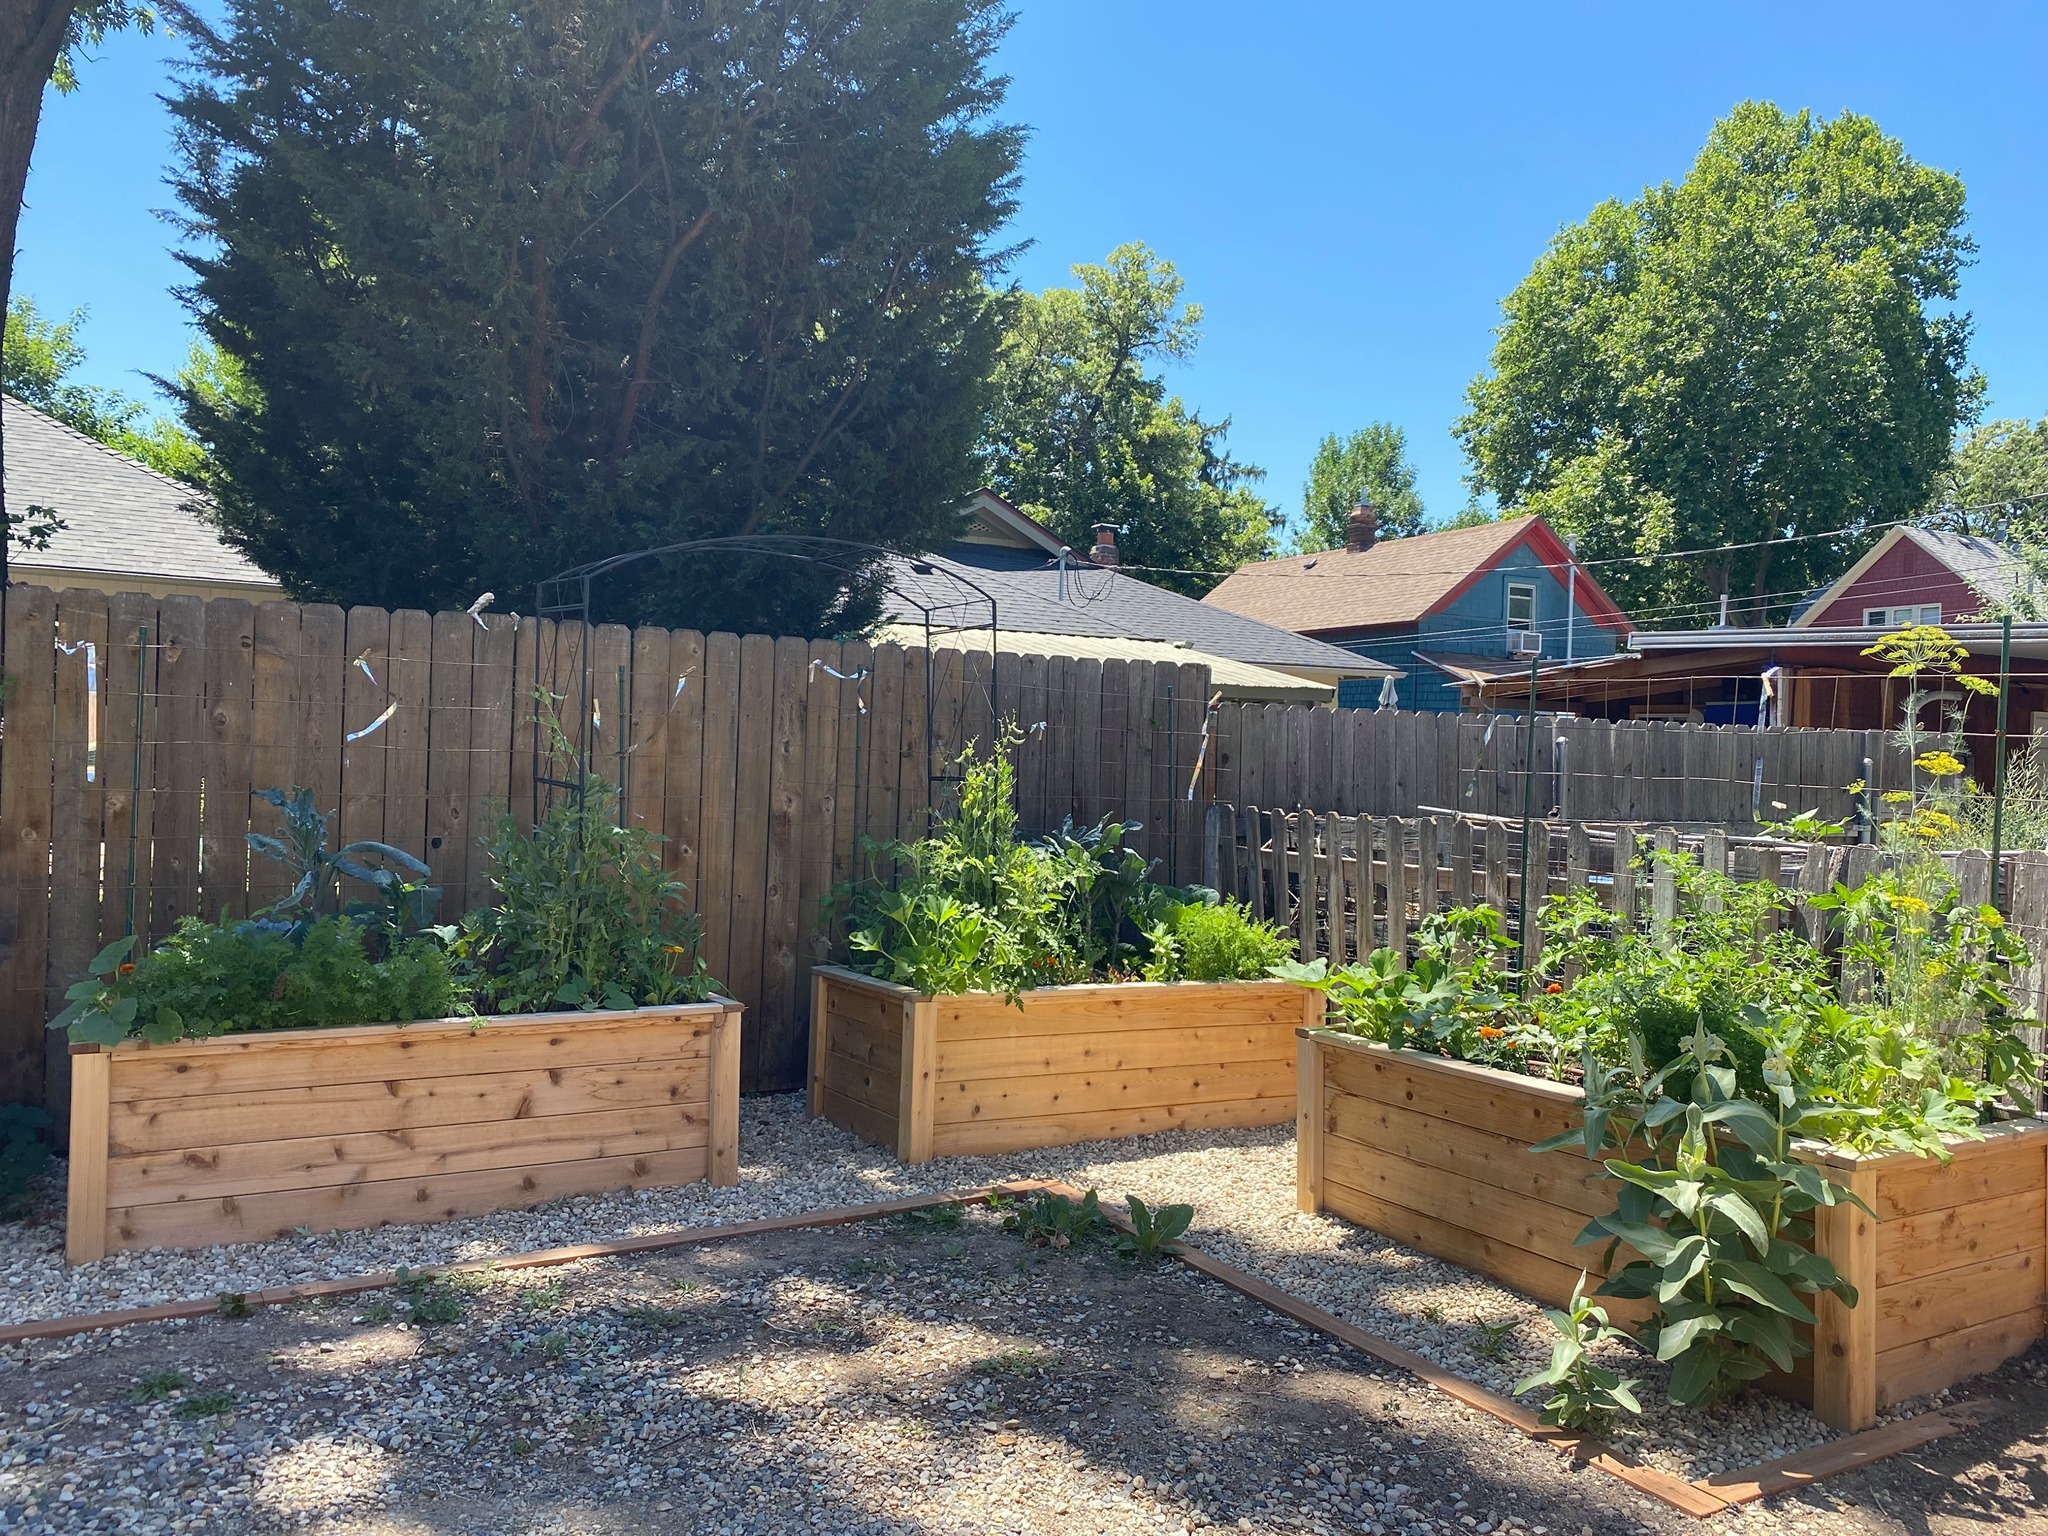 Are Raised Beds Better for Gardening?